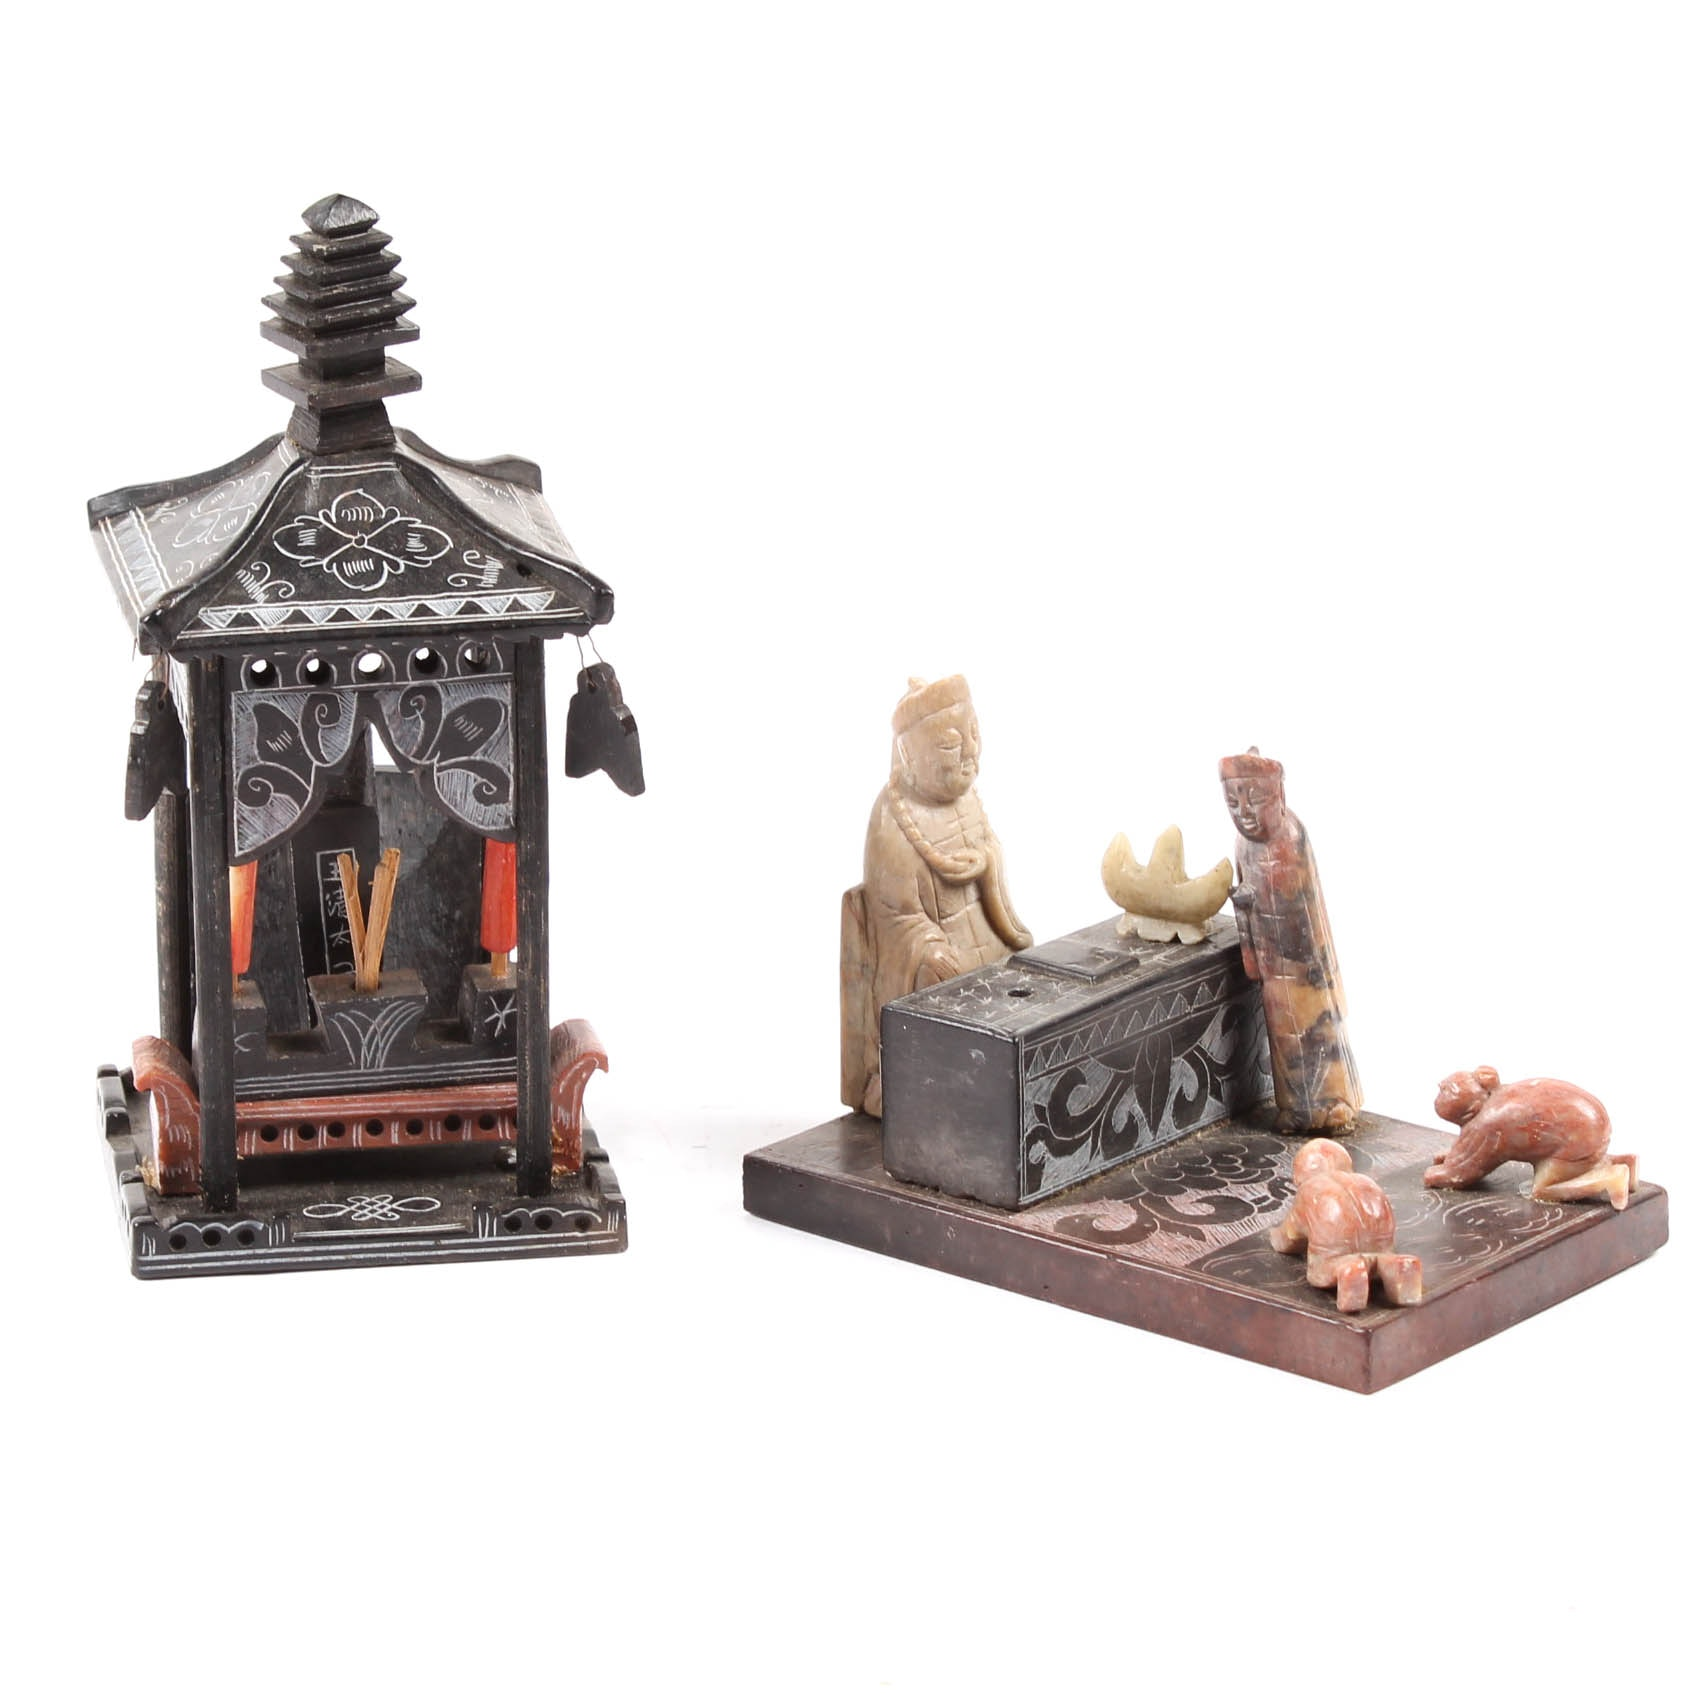 Chinese Altar and Temple Soapstone Figurines Circa Late 1800's